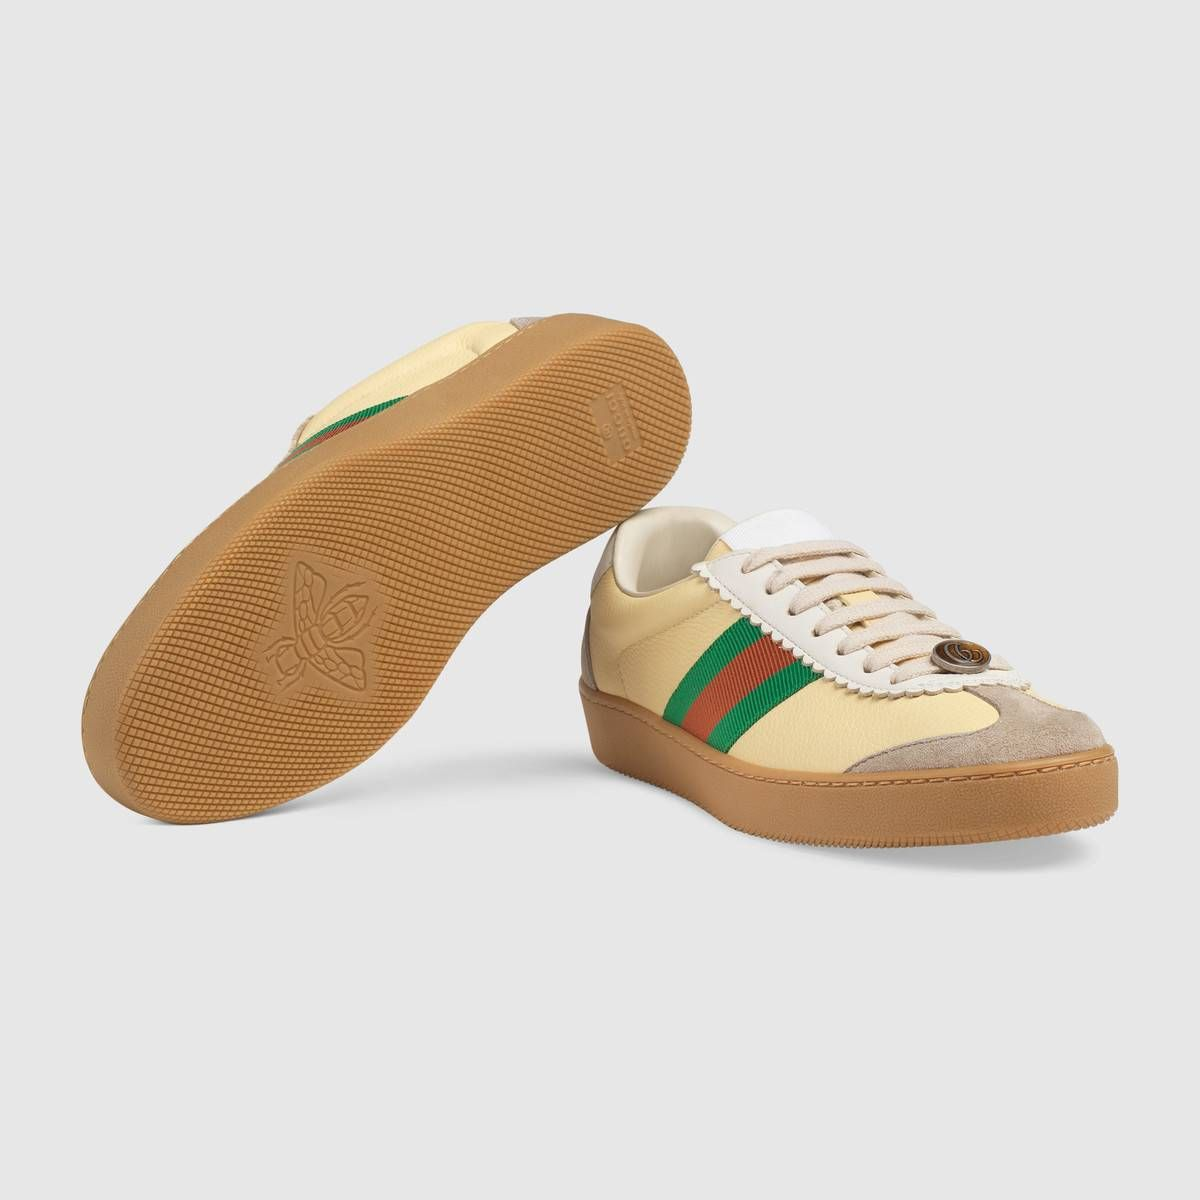 Leather and suede Web sneaker by Gucci